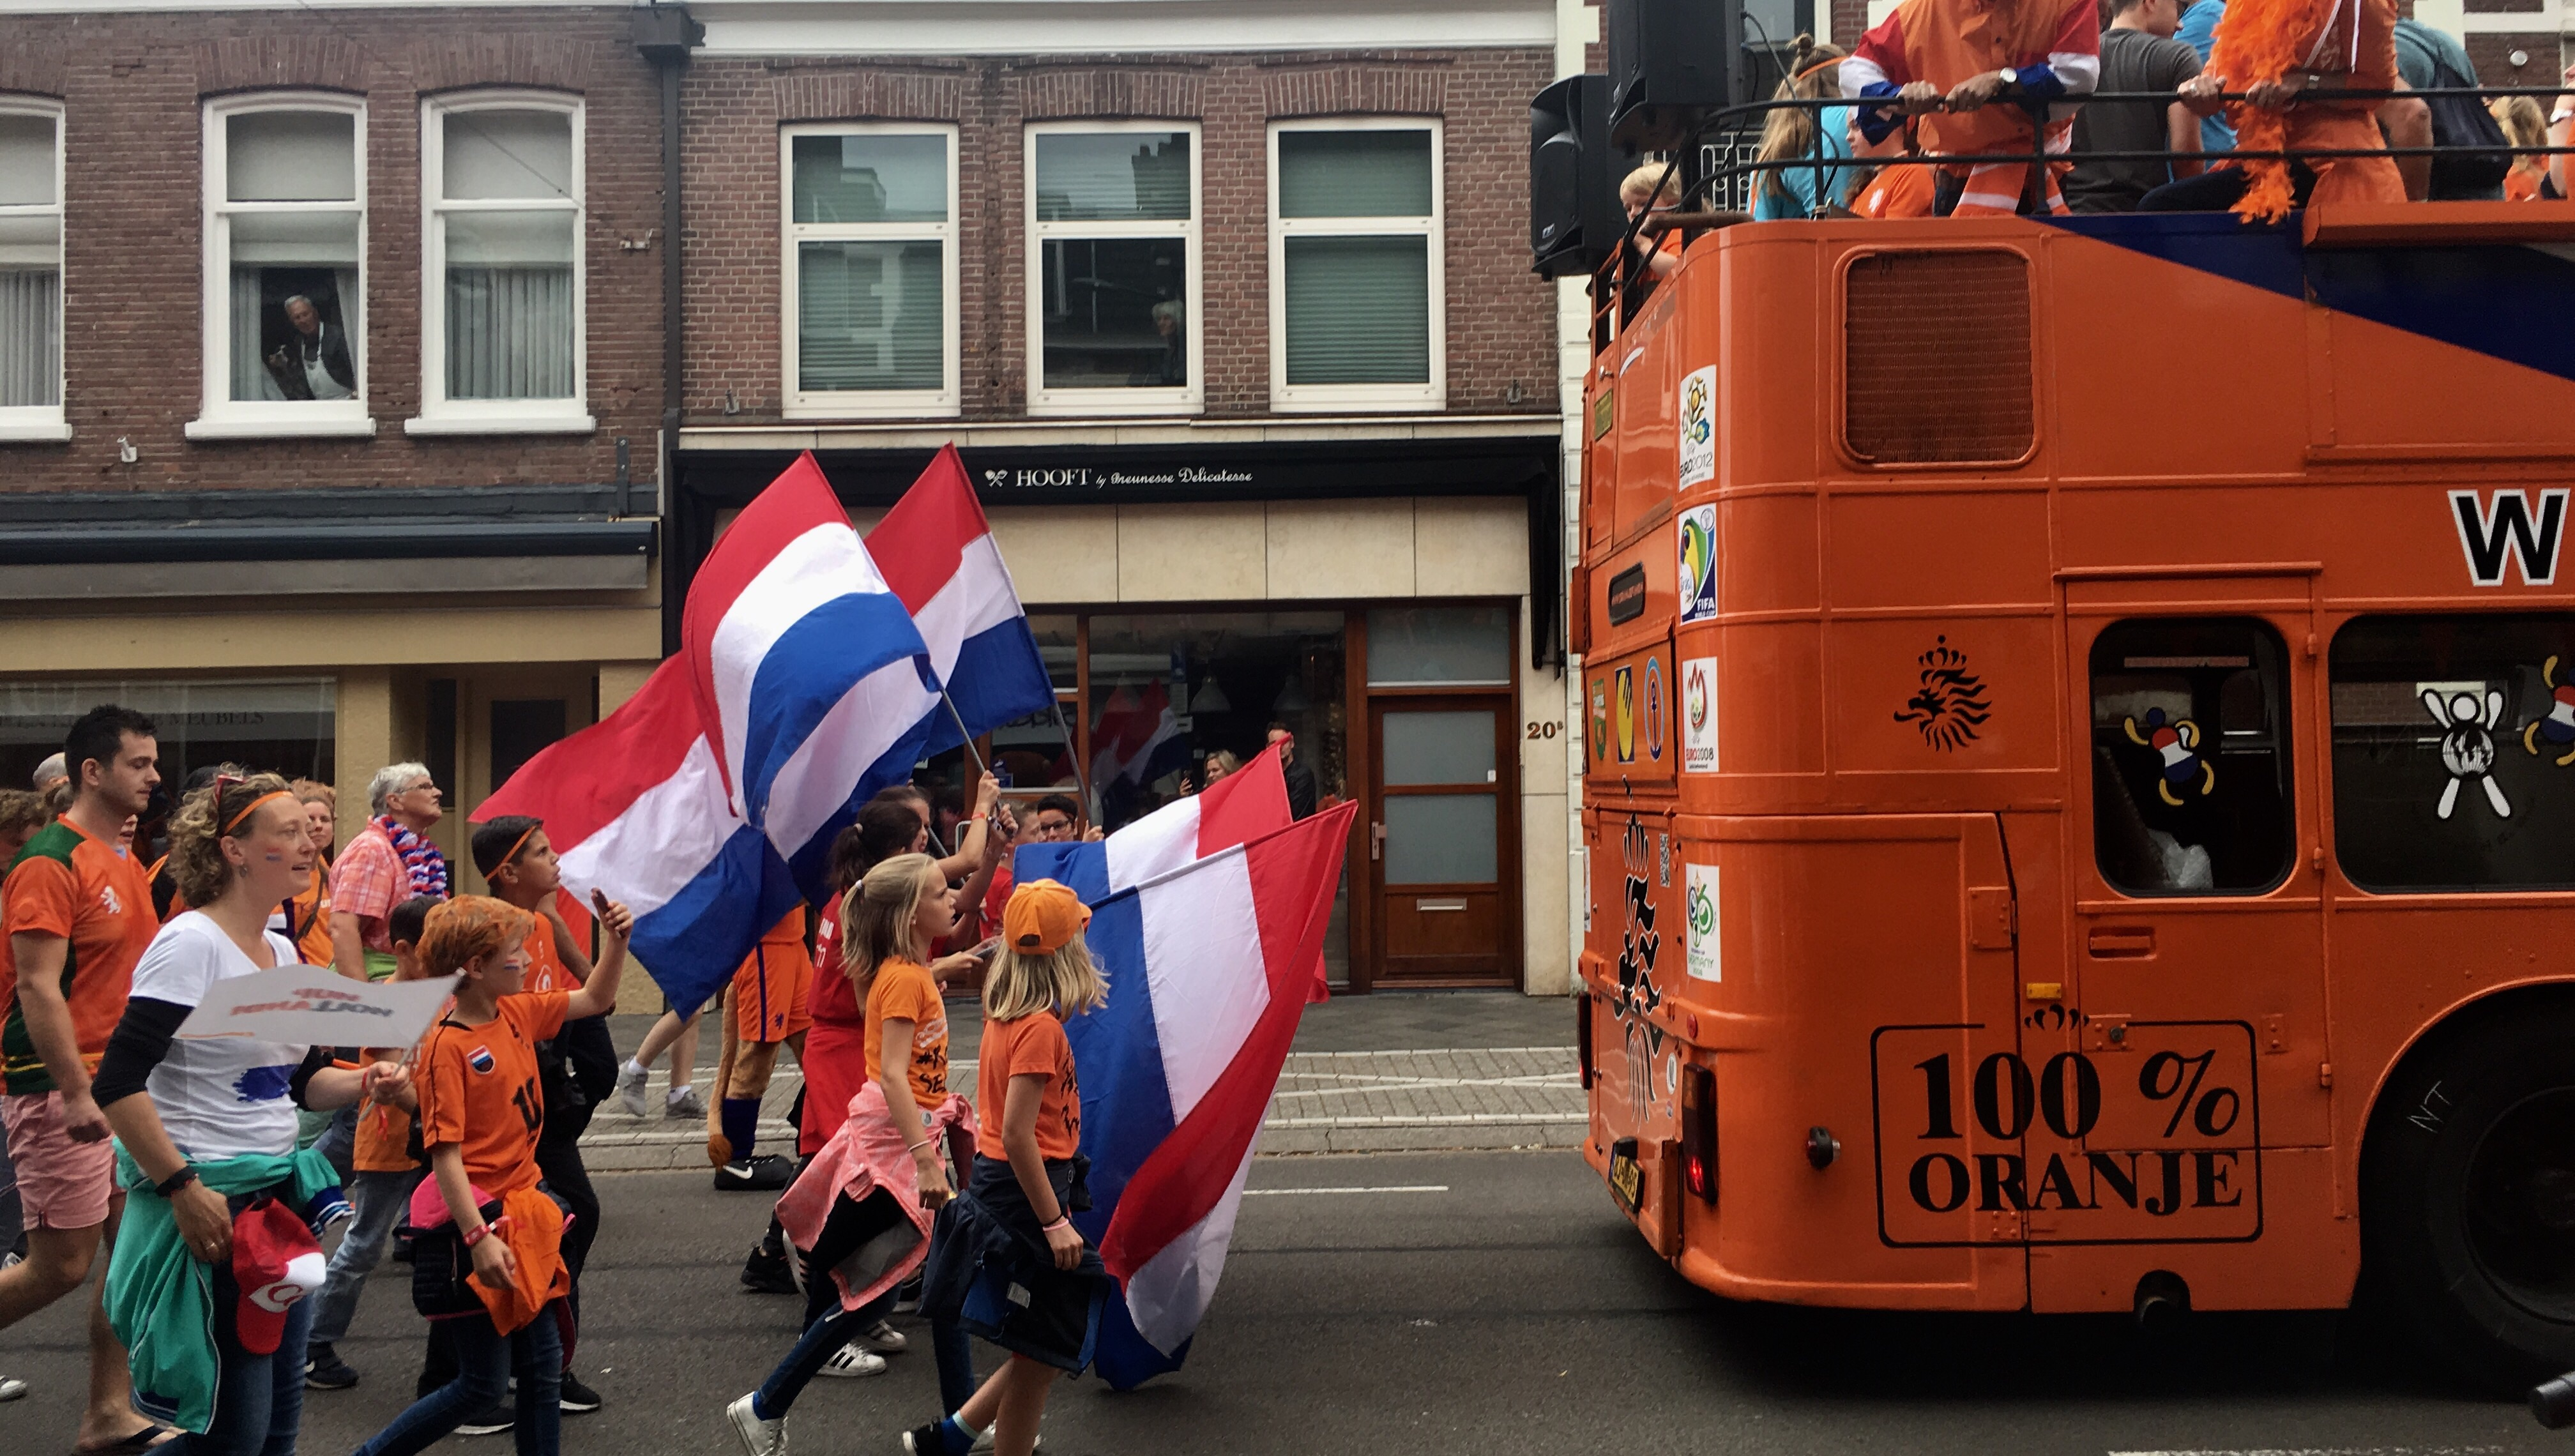 The Women's Euros have arrived in Holland